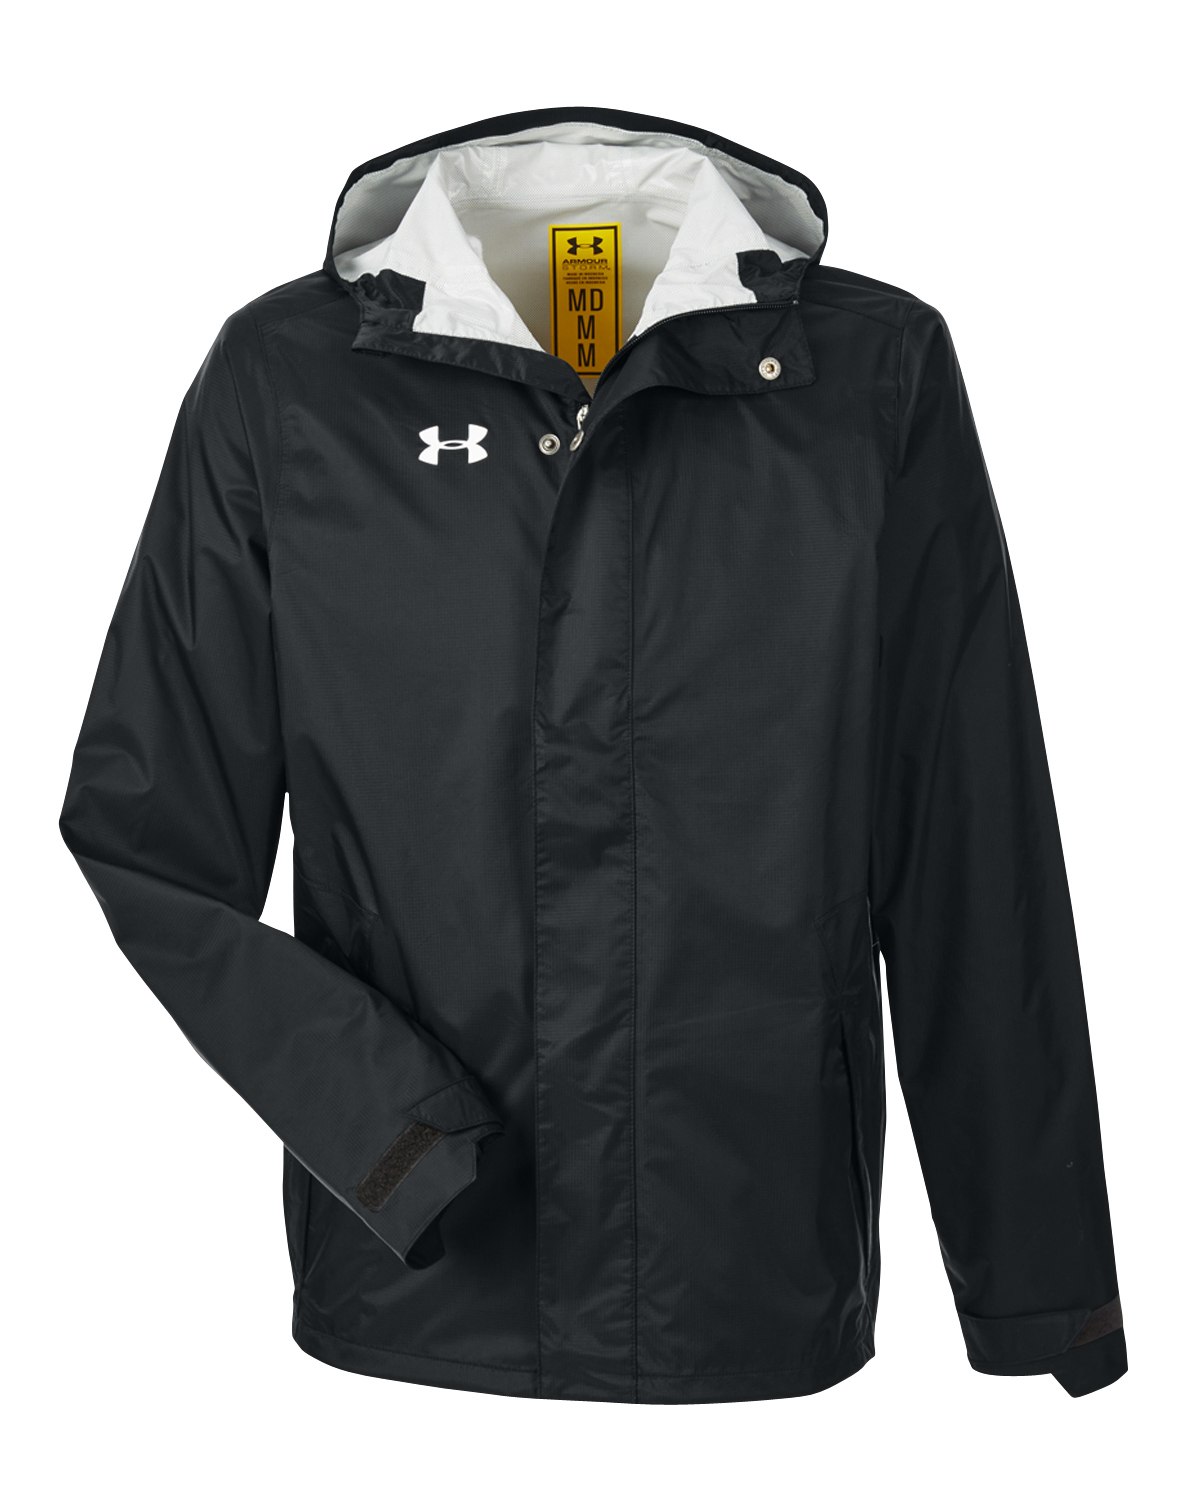 Under Armour 1261123 - Men's Ace Rain Jacket